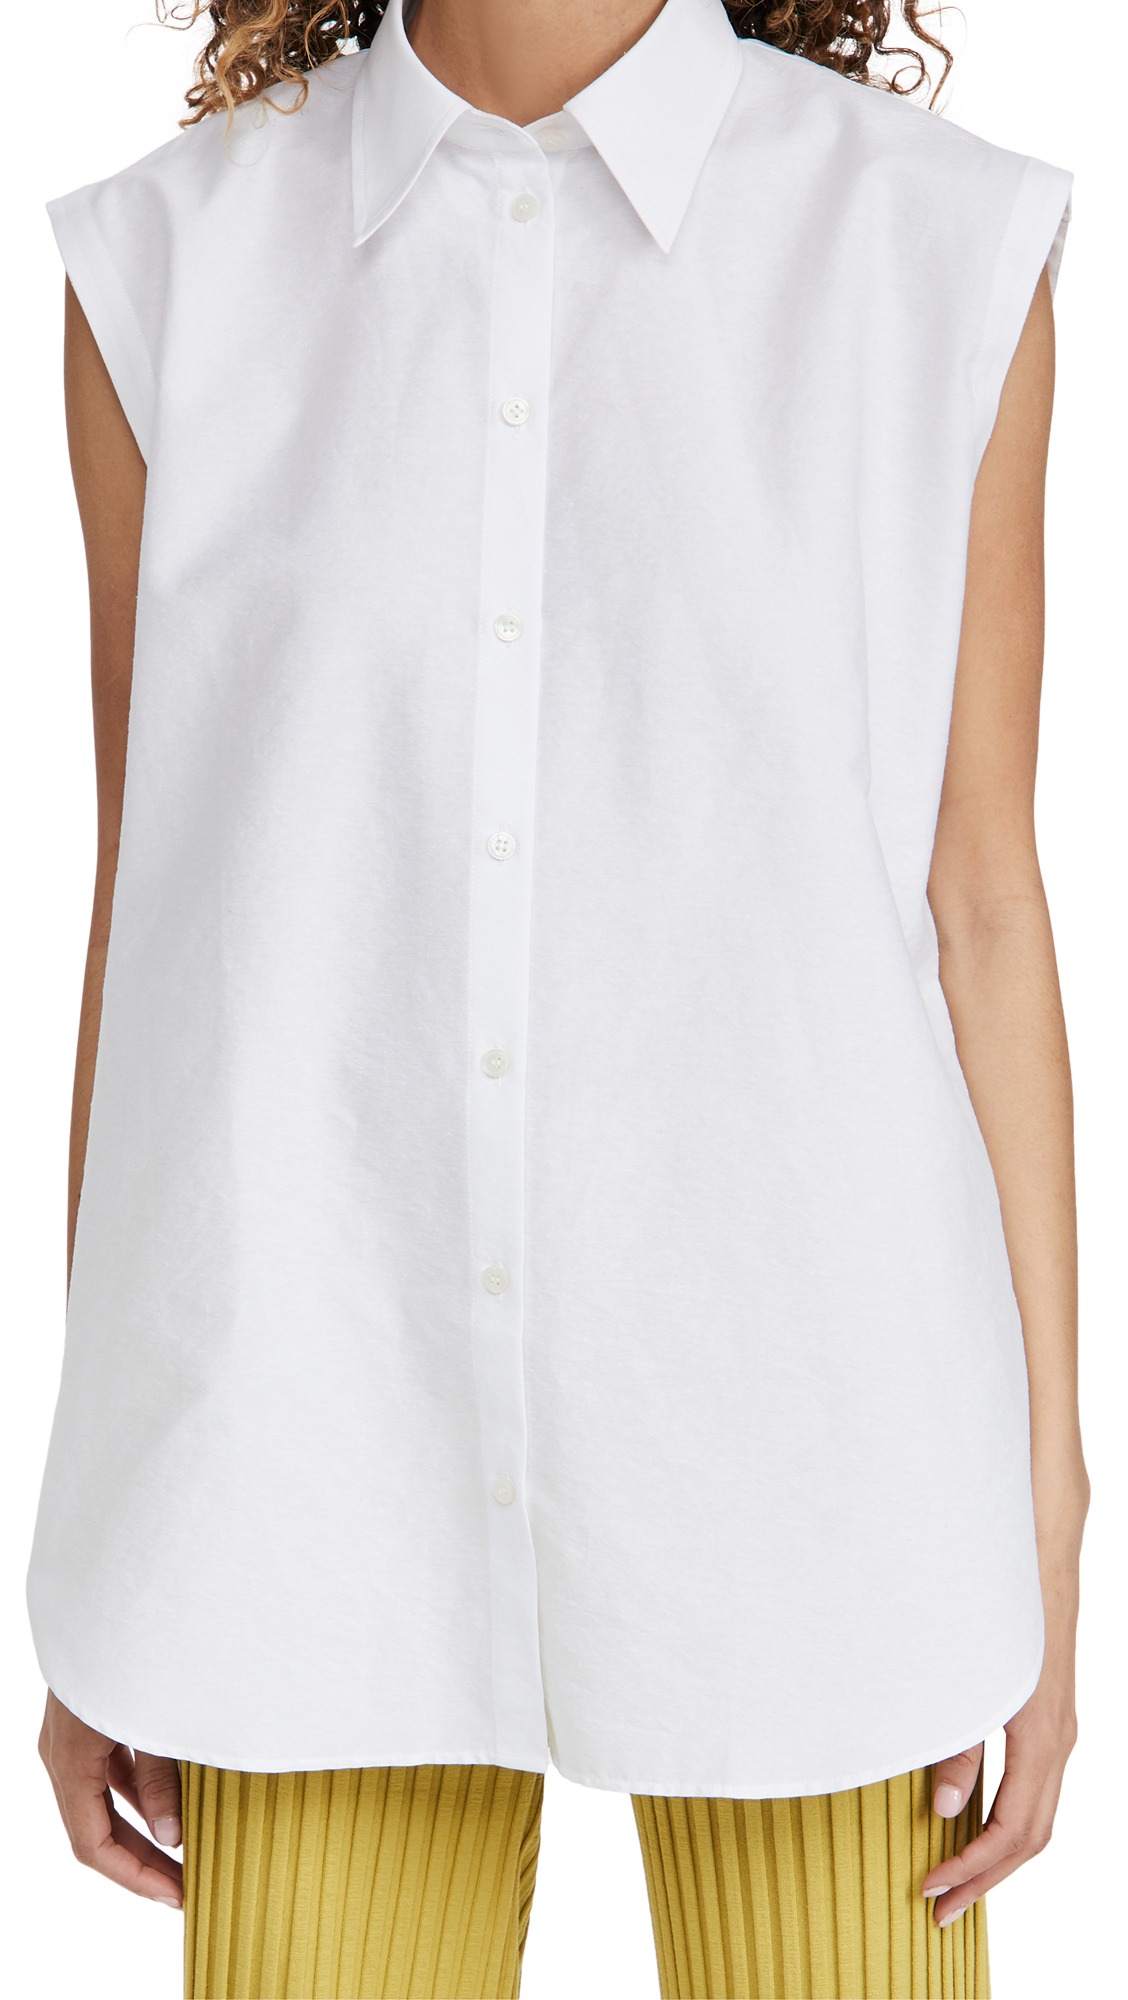 Acne Studios Sleeveless Shirt